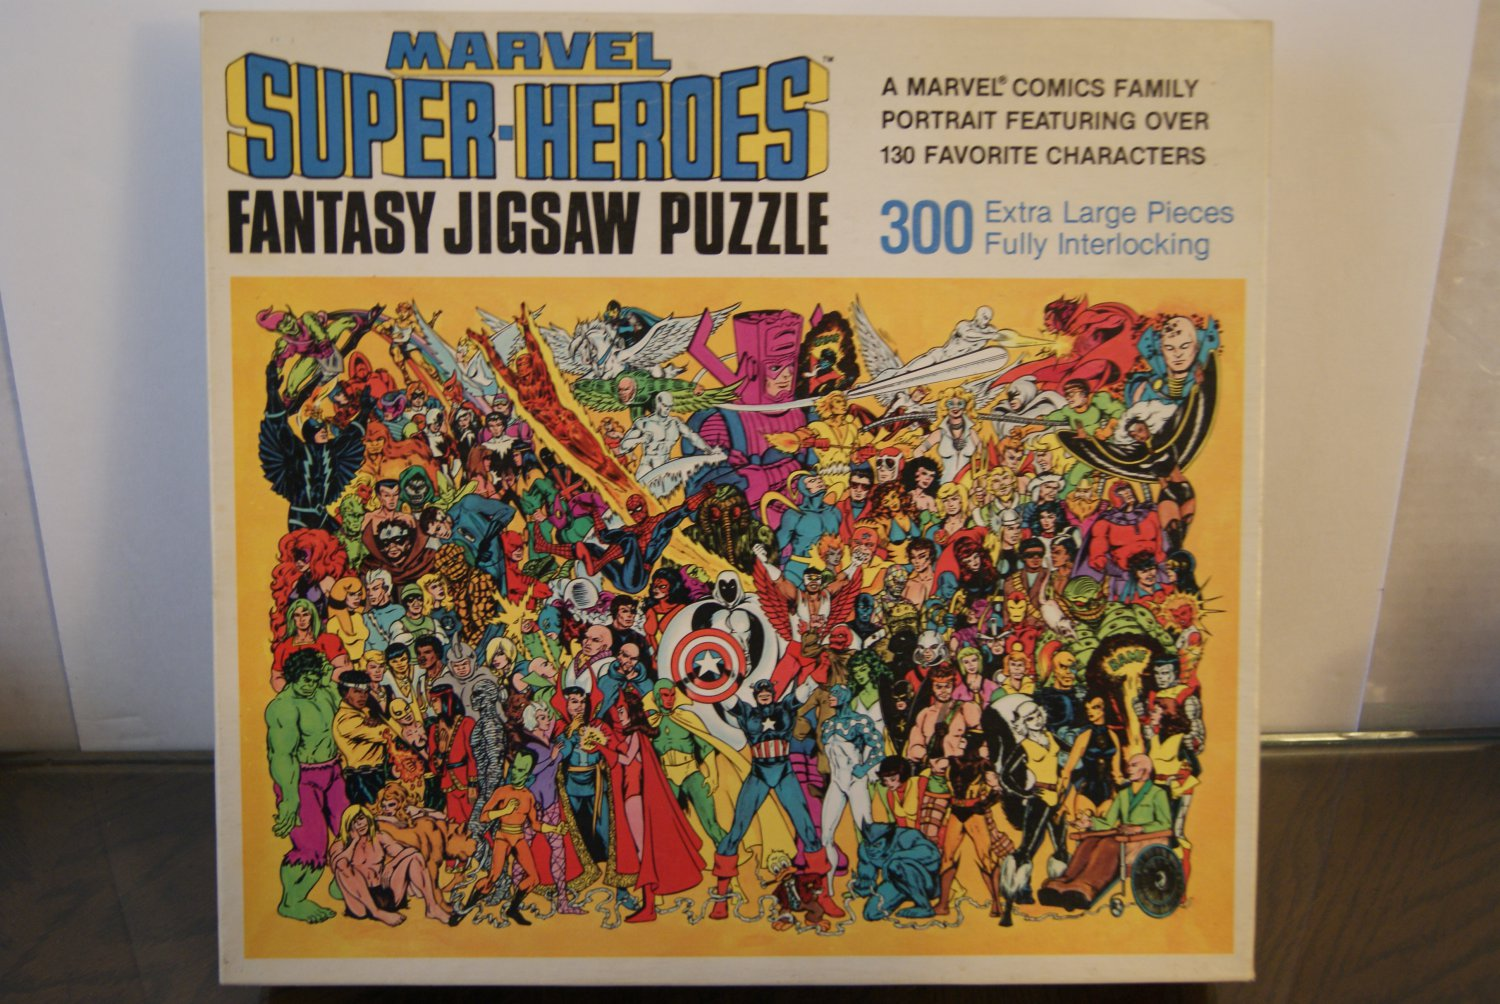 Marvel Super-Heroes Fantasy Jigsaw Puzzle